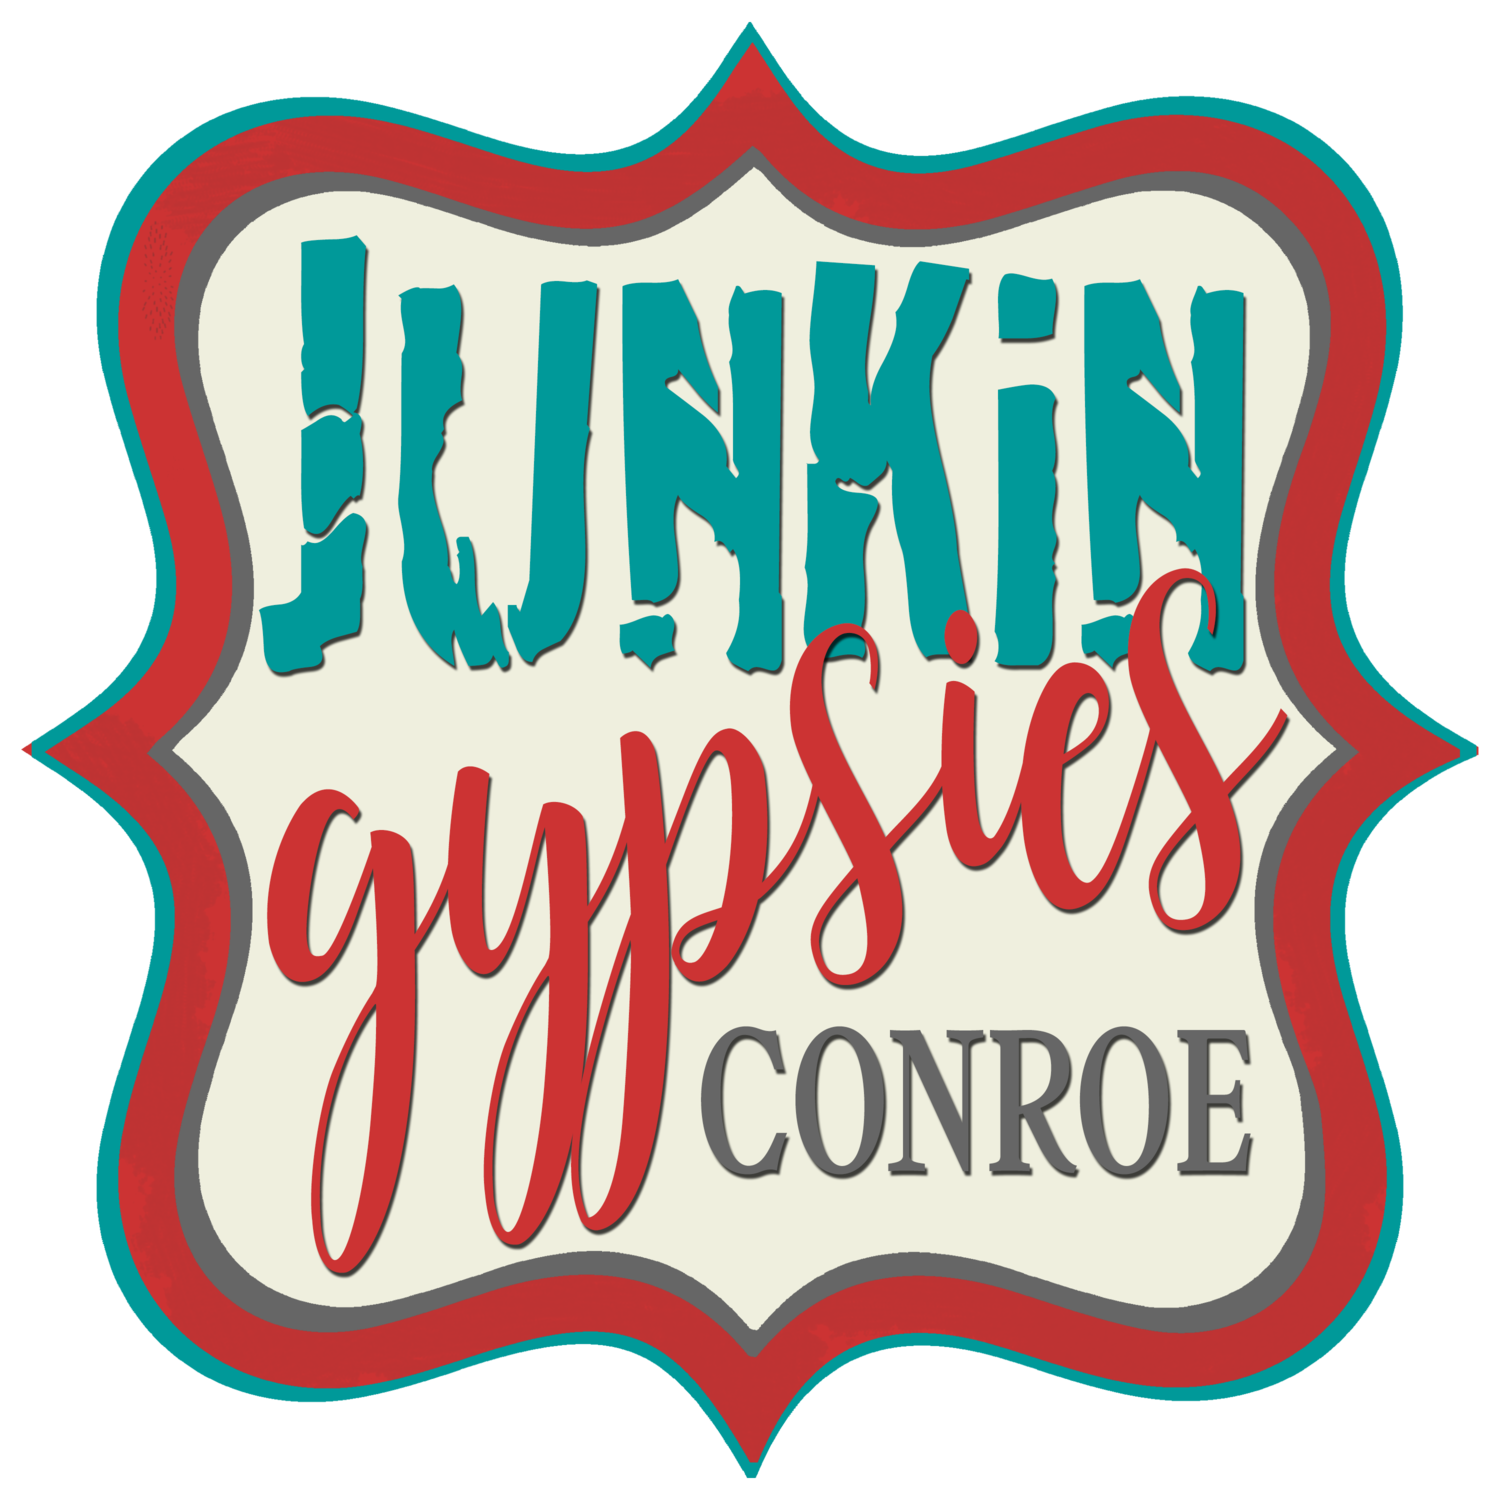 Junkin Gypsies Conroe